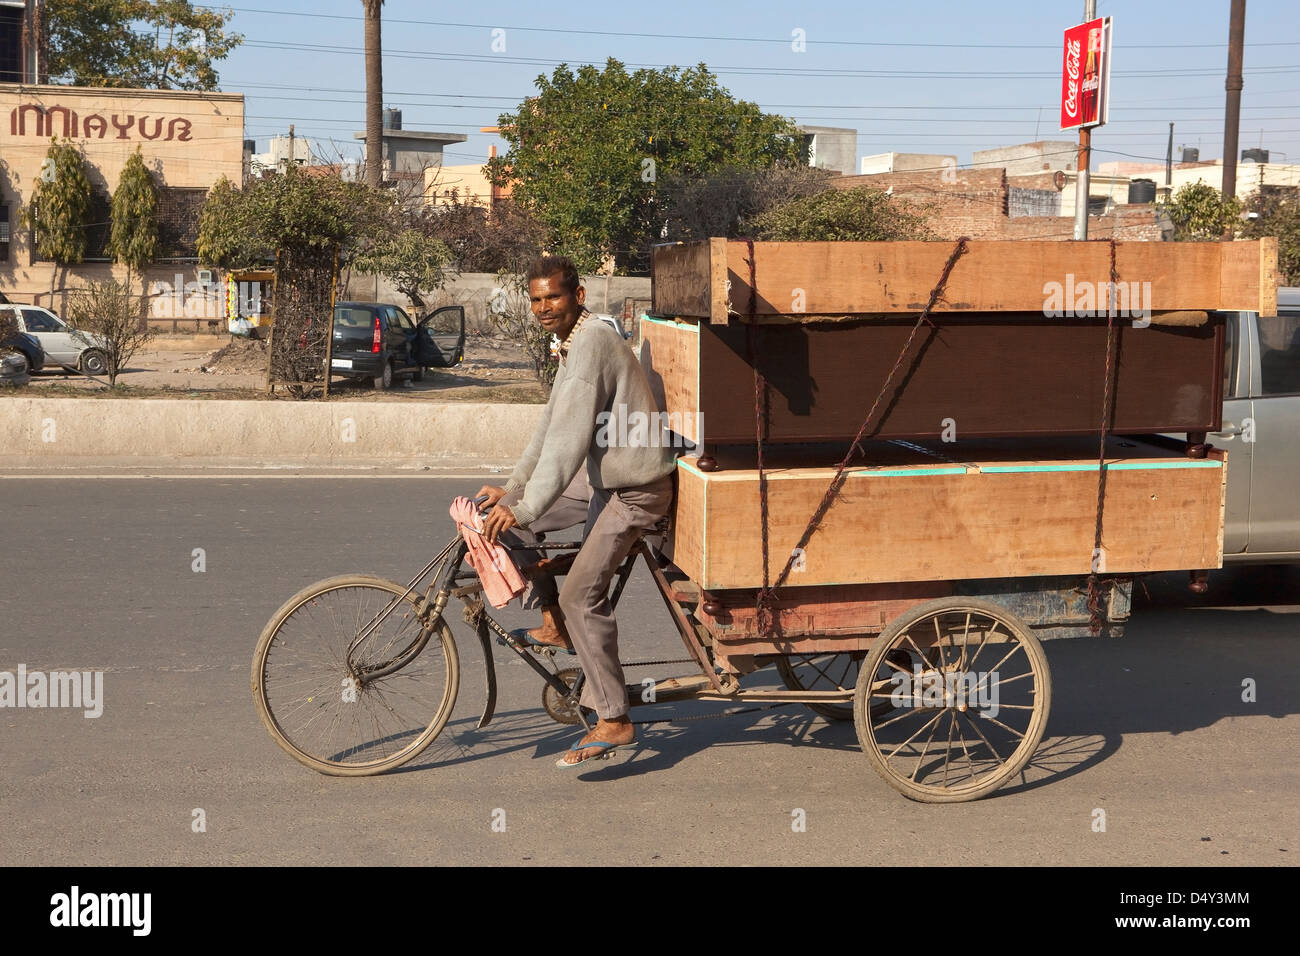 Amritsar street scene with a Punjabi man carrying furniture on a rickshaw on his way home on a sunny evening - Stock Image